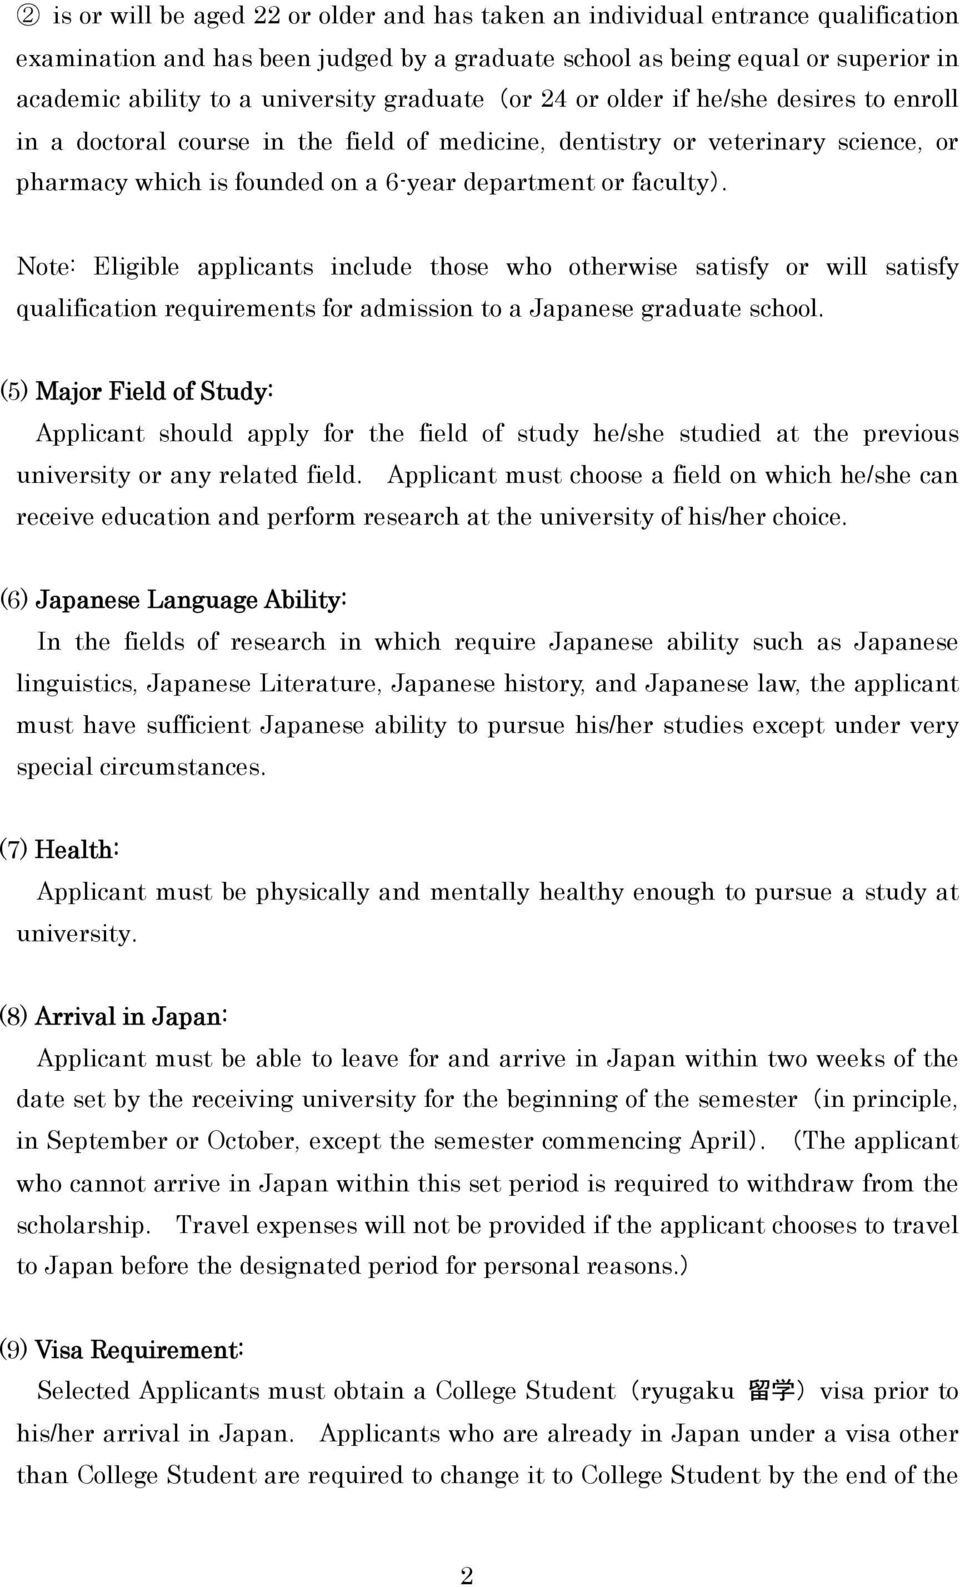 Note: Eligible applicants include those who otherwise satisfy or will satisfy qualification requirements for admission to a Japanese graduate school.